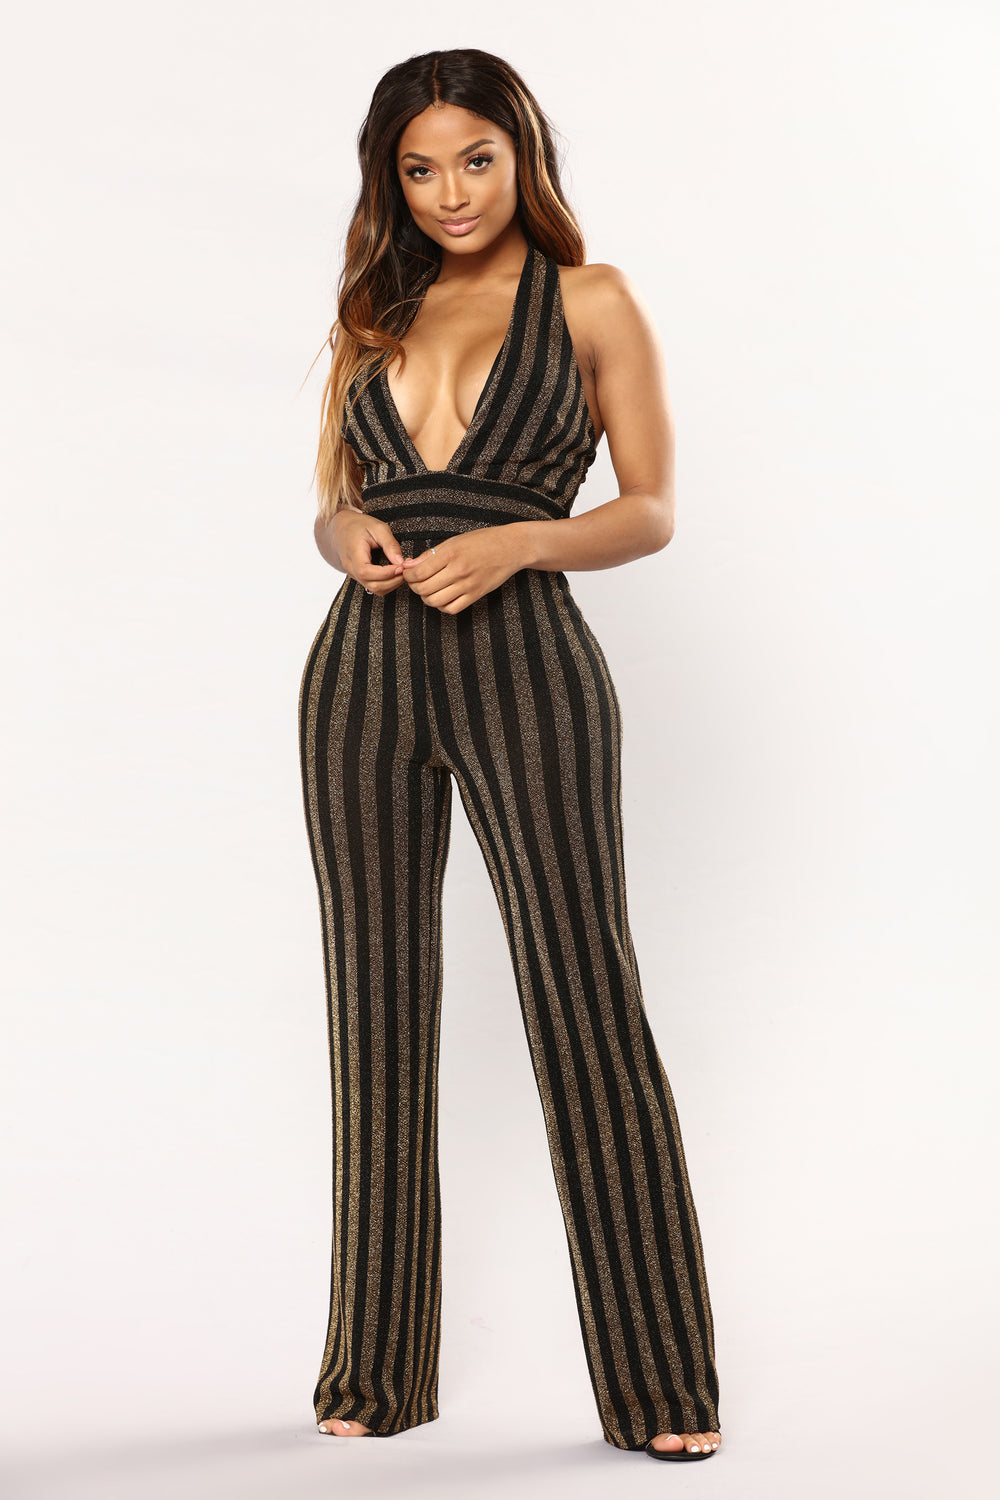 Any Time You Need A Friend Jumpsuit - Black/Gold